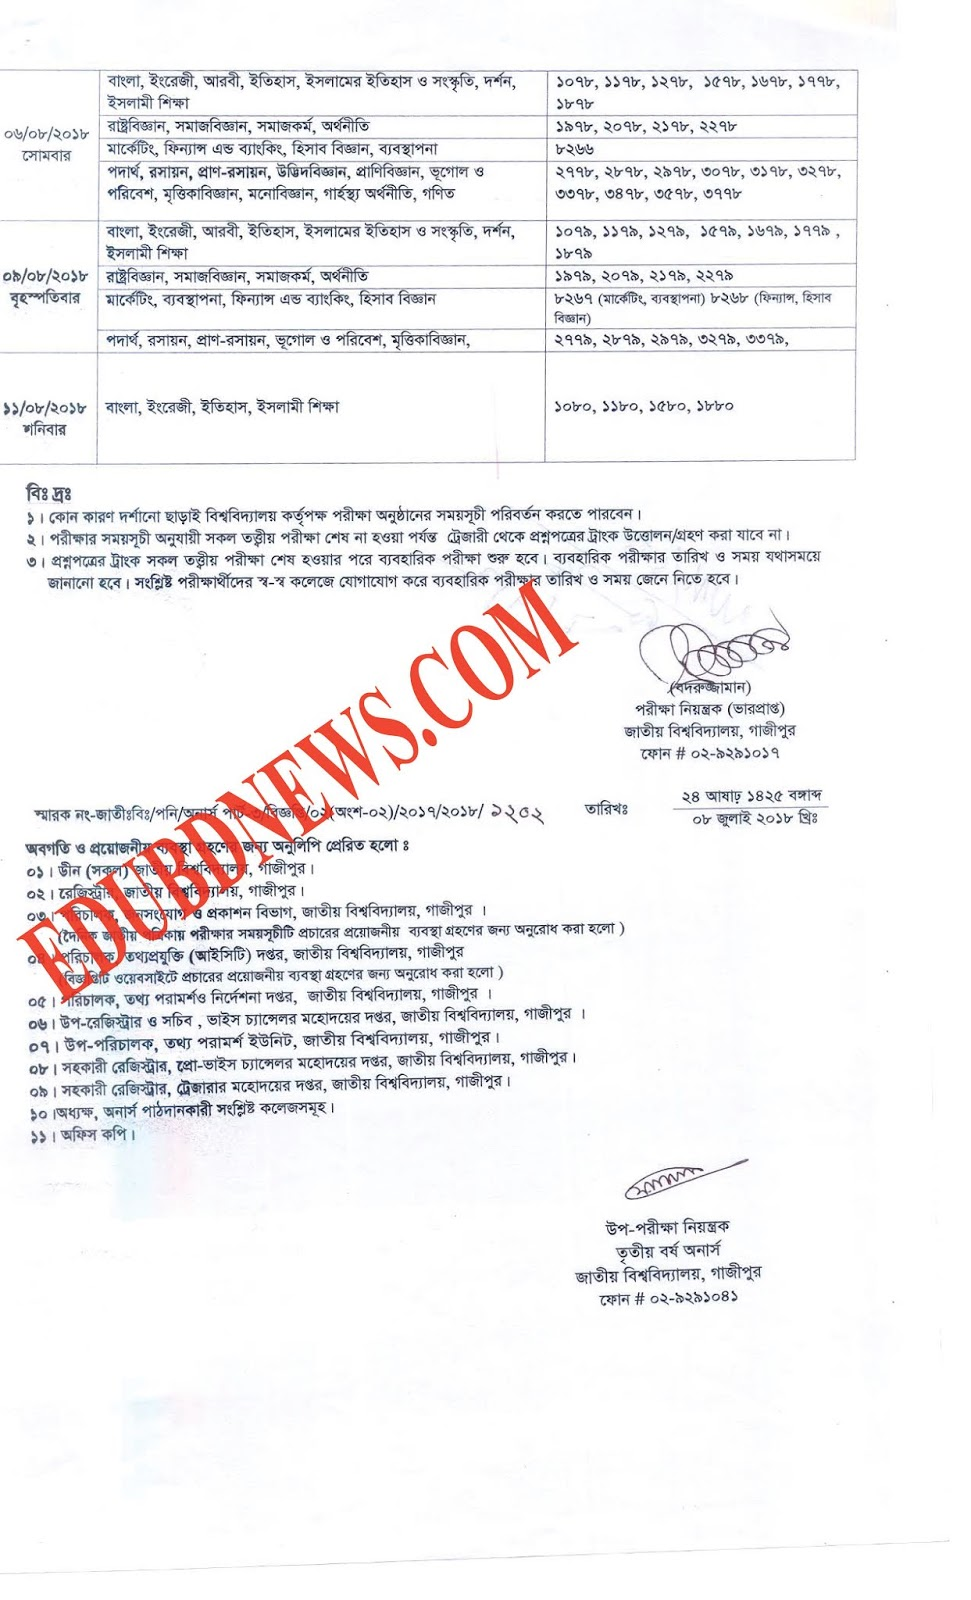 Honours 3rd Year (Special)  Exam Routine 2018 Download | nu.ac.bd | NU EDU BD